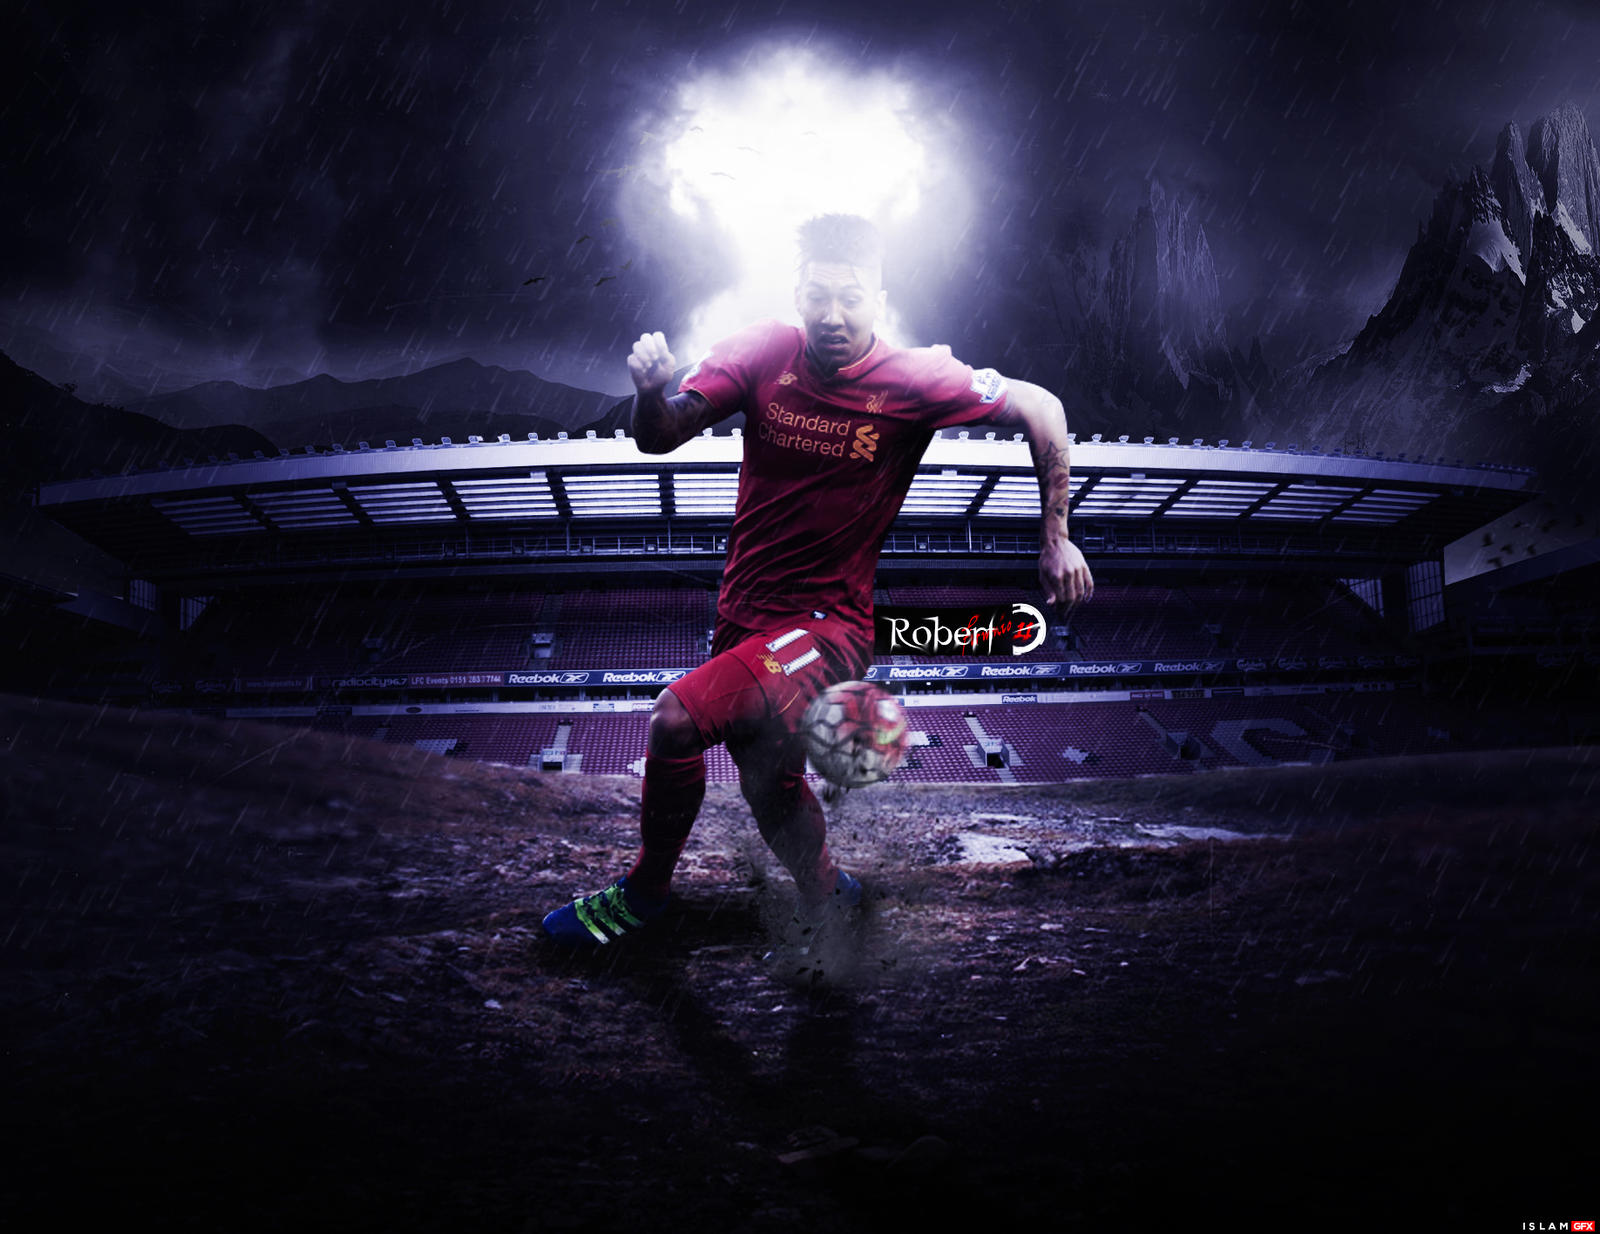 Roberto-Firmino-Wallpaper By Islam12Elbasami On DeviantArt